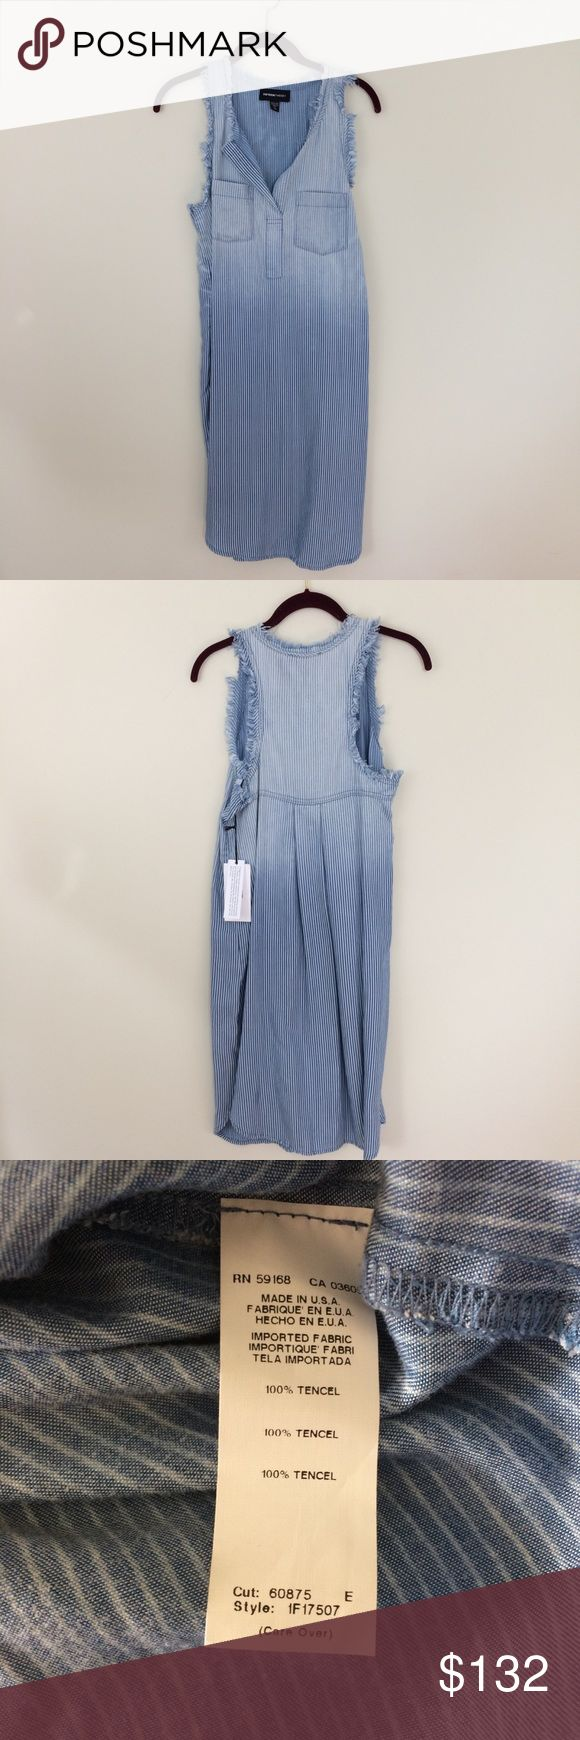 🆕❤️Fifteen Twenty Frayed shirt Dress This classic shirt dress by Fifteen Twenty with a  frayed finish and ombré-washed chambray. It's sleeveless and striped with a shirttail hem. Have a question leave it in the comments. Fifteen Twenty Dresses